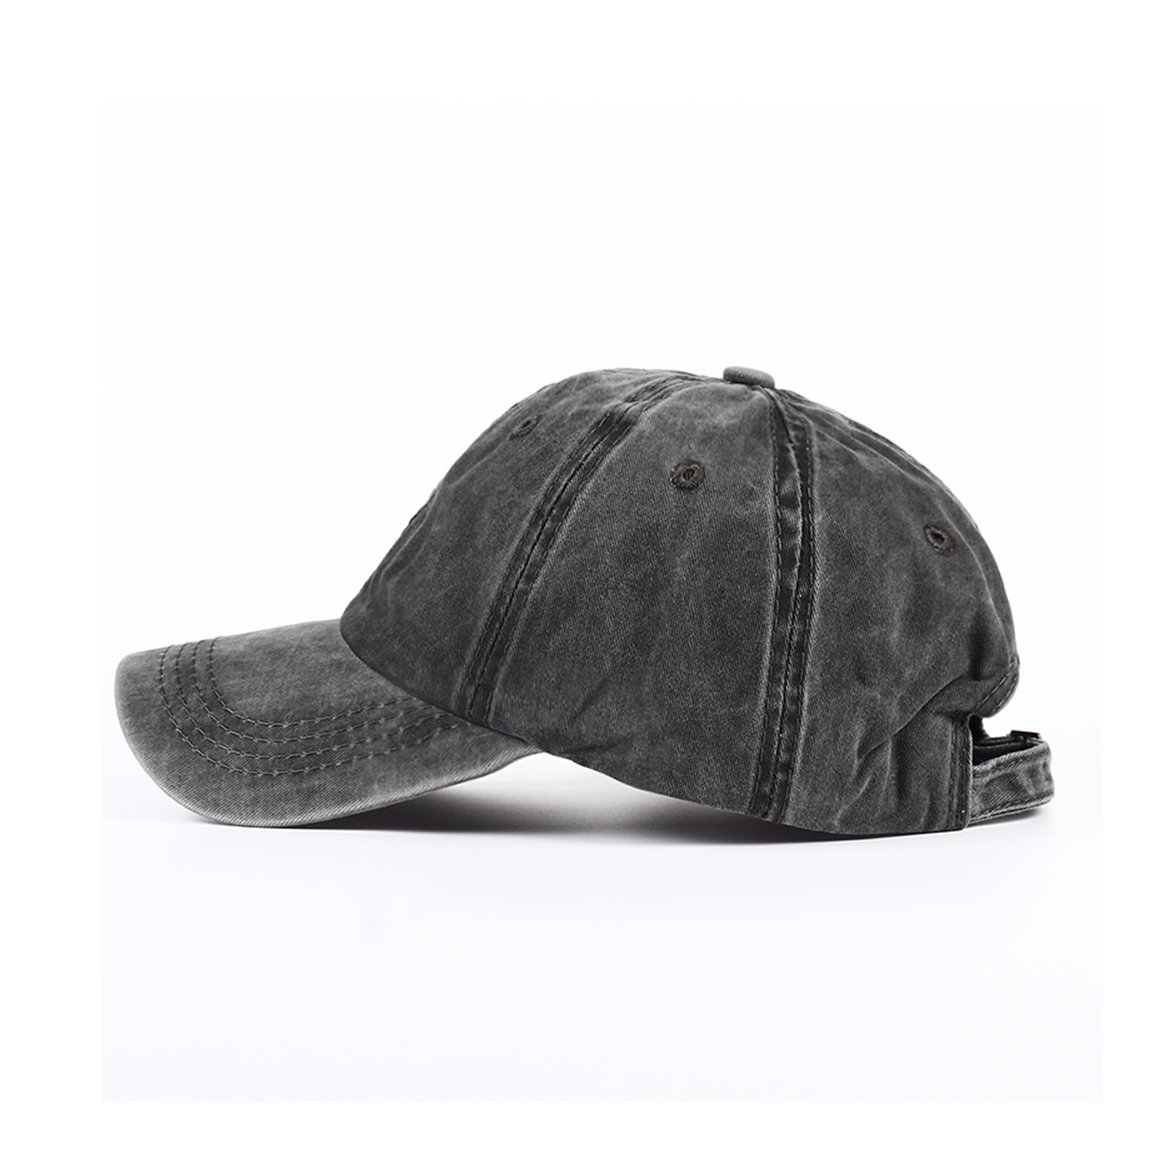 c6d0700794b Amazon.com  Eohak Kids Baseball Hat Washed Low Profile Cotton and Denim Plain  Baseball Cap Hat